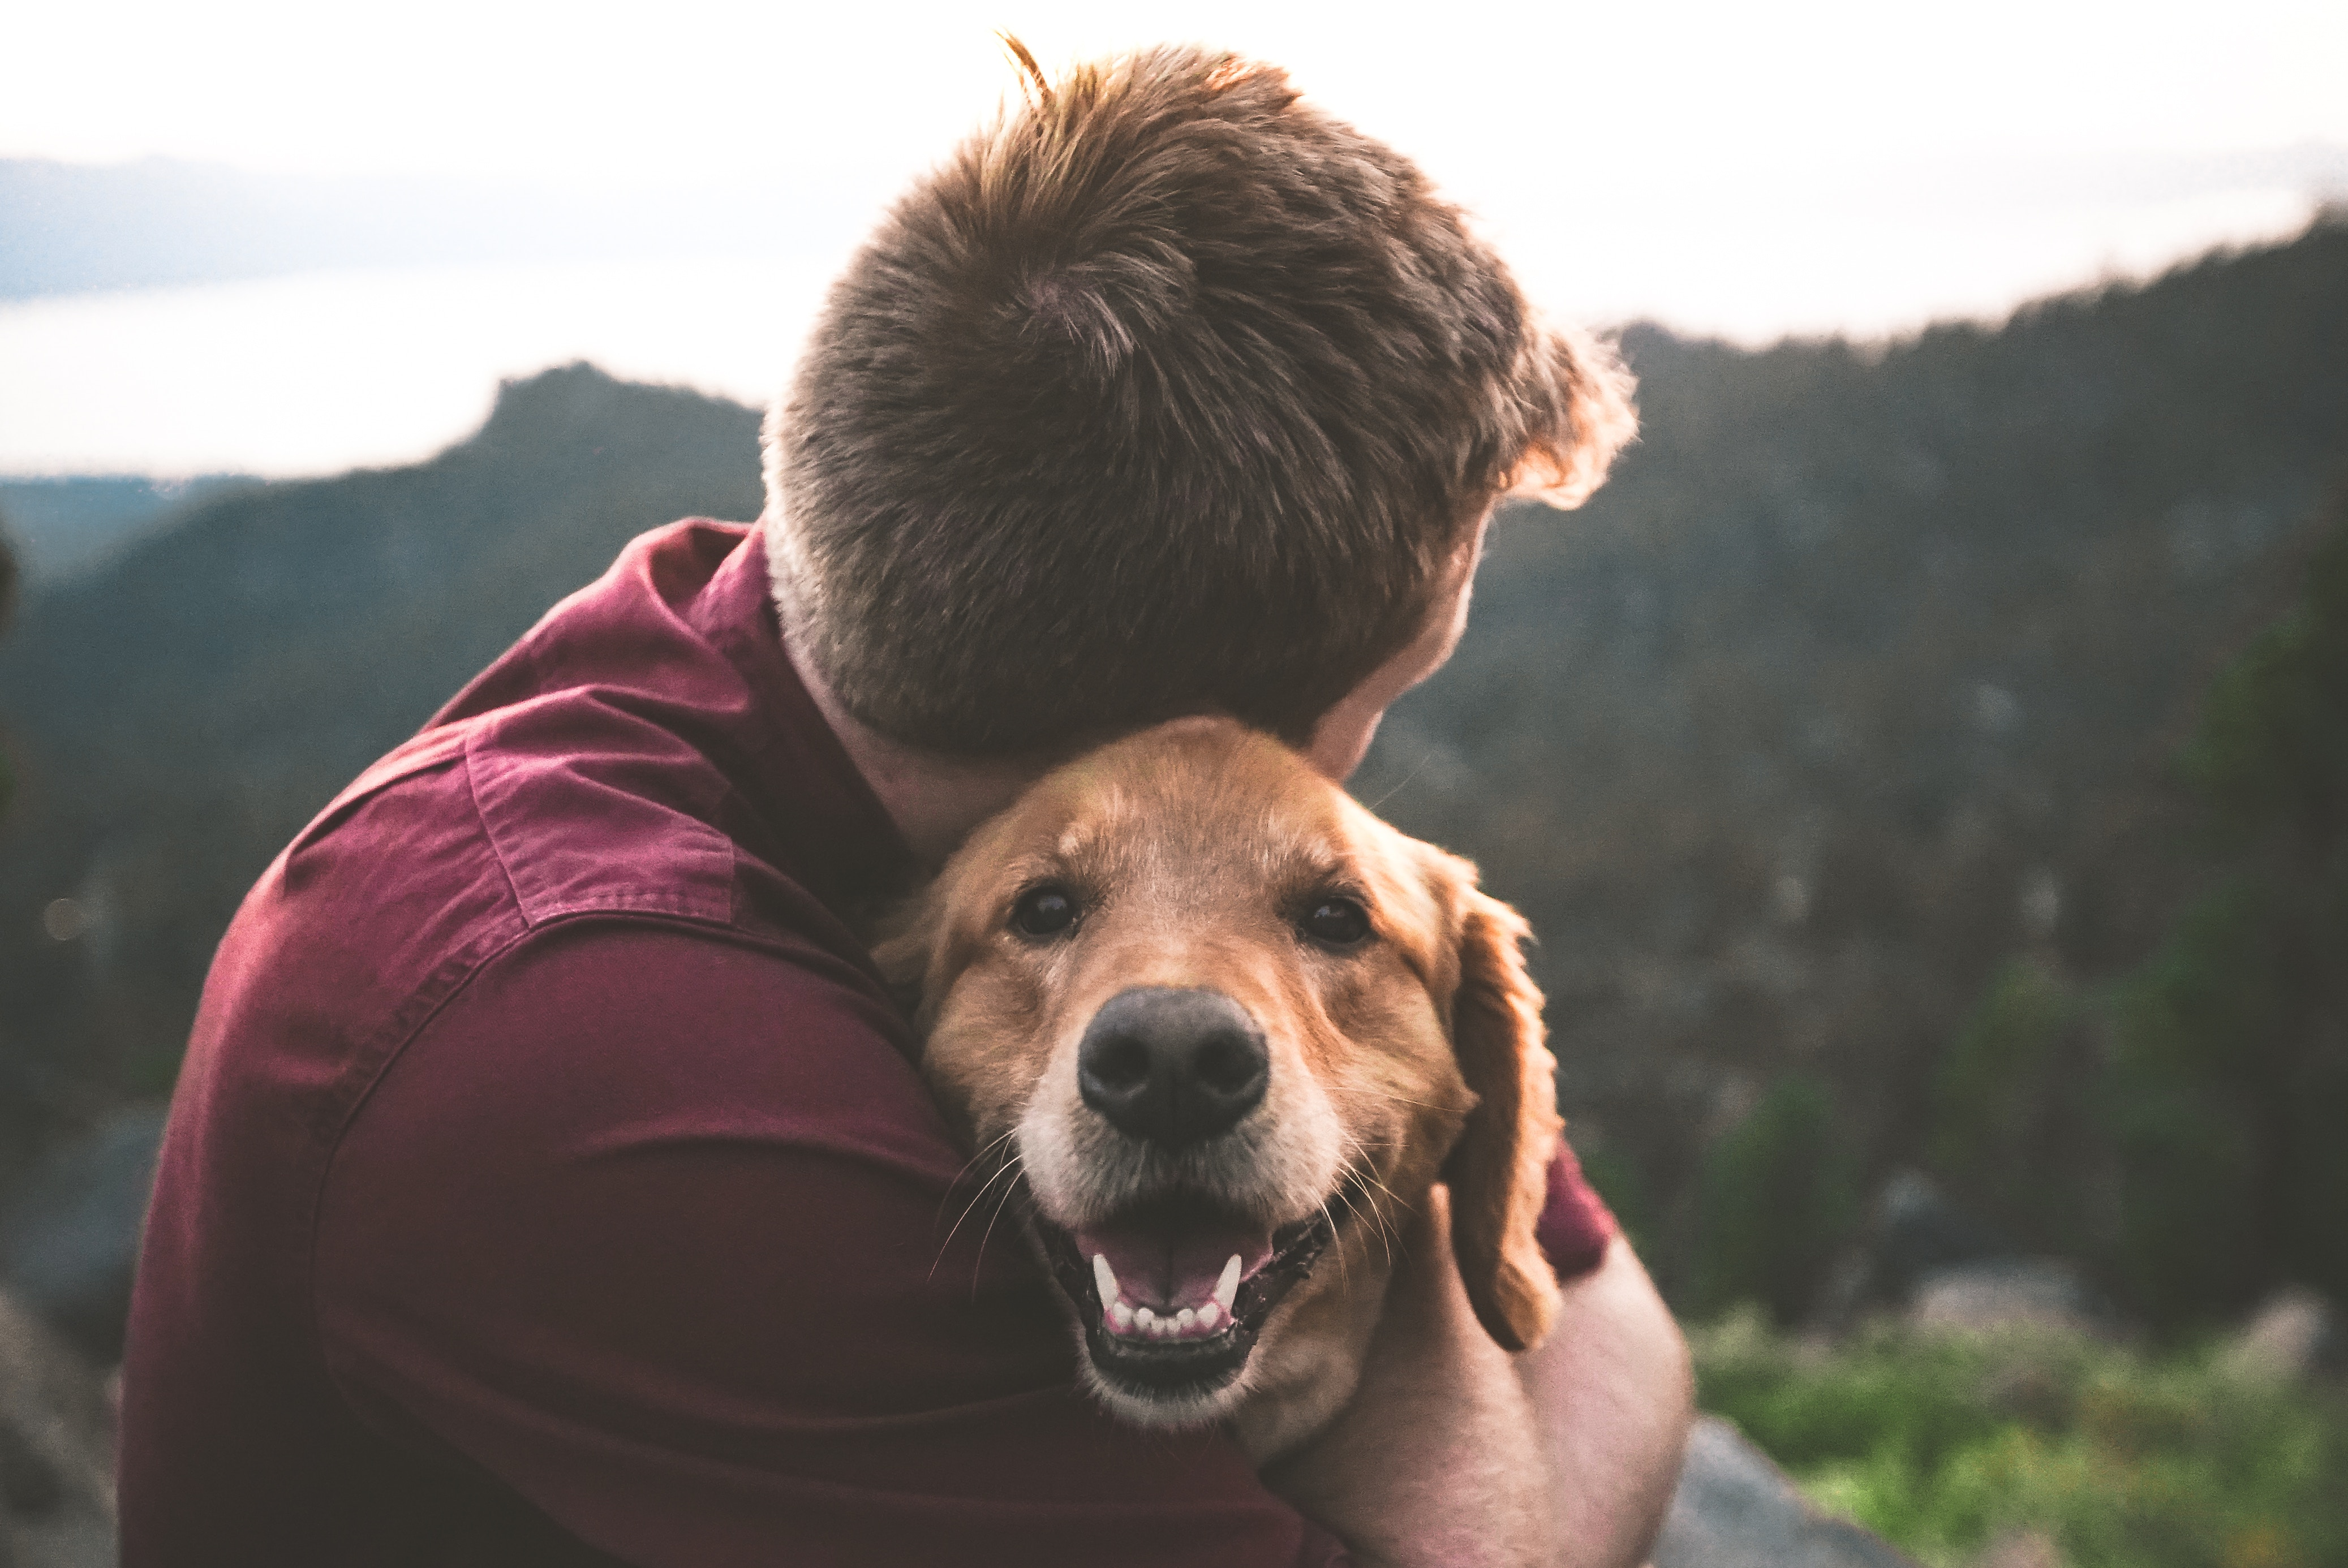 As veterinary medicine continues to advance, companion animals are living longer than ever—and pet insurance is a great way to ensure you can provide the care yours will need along the way.